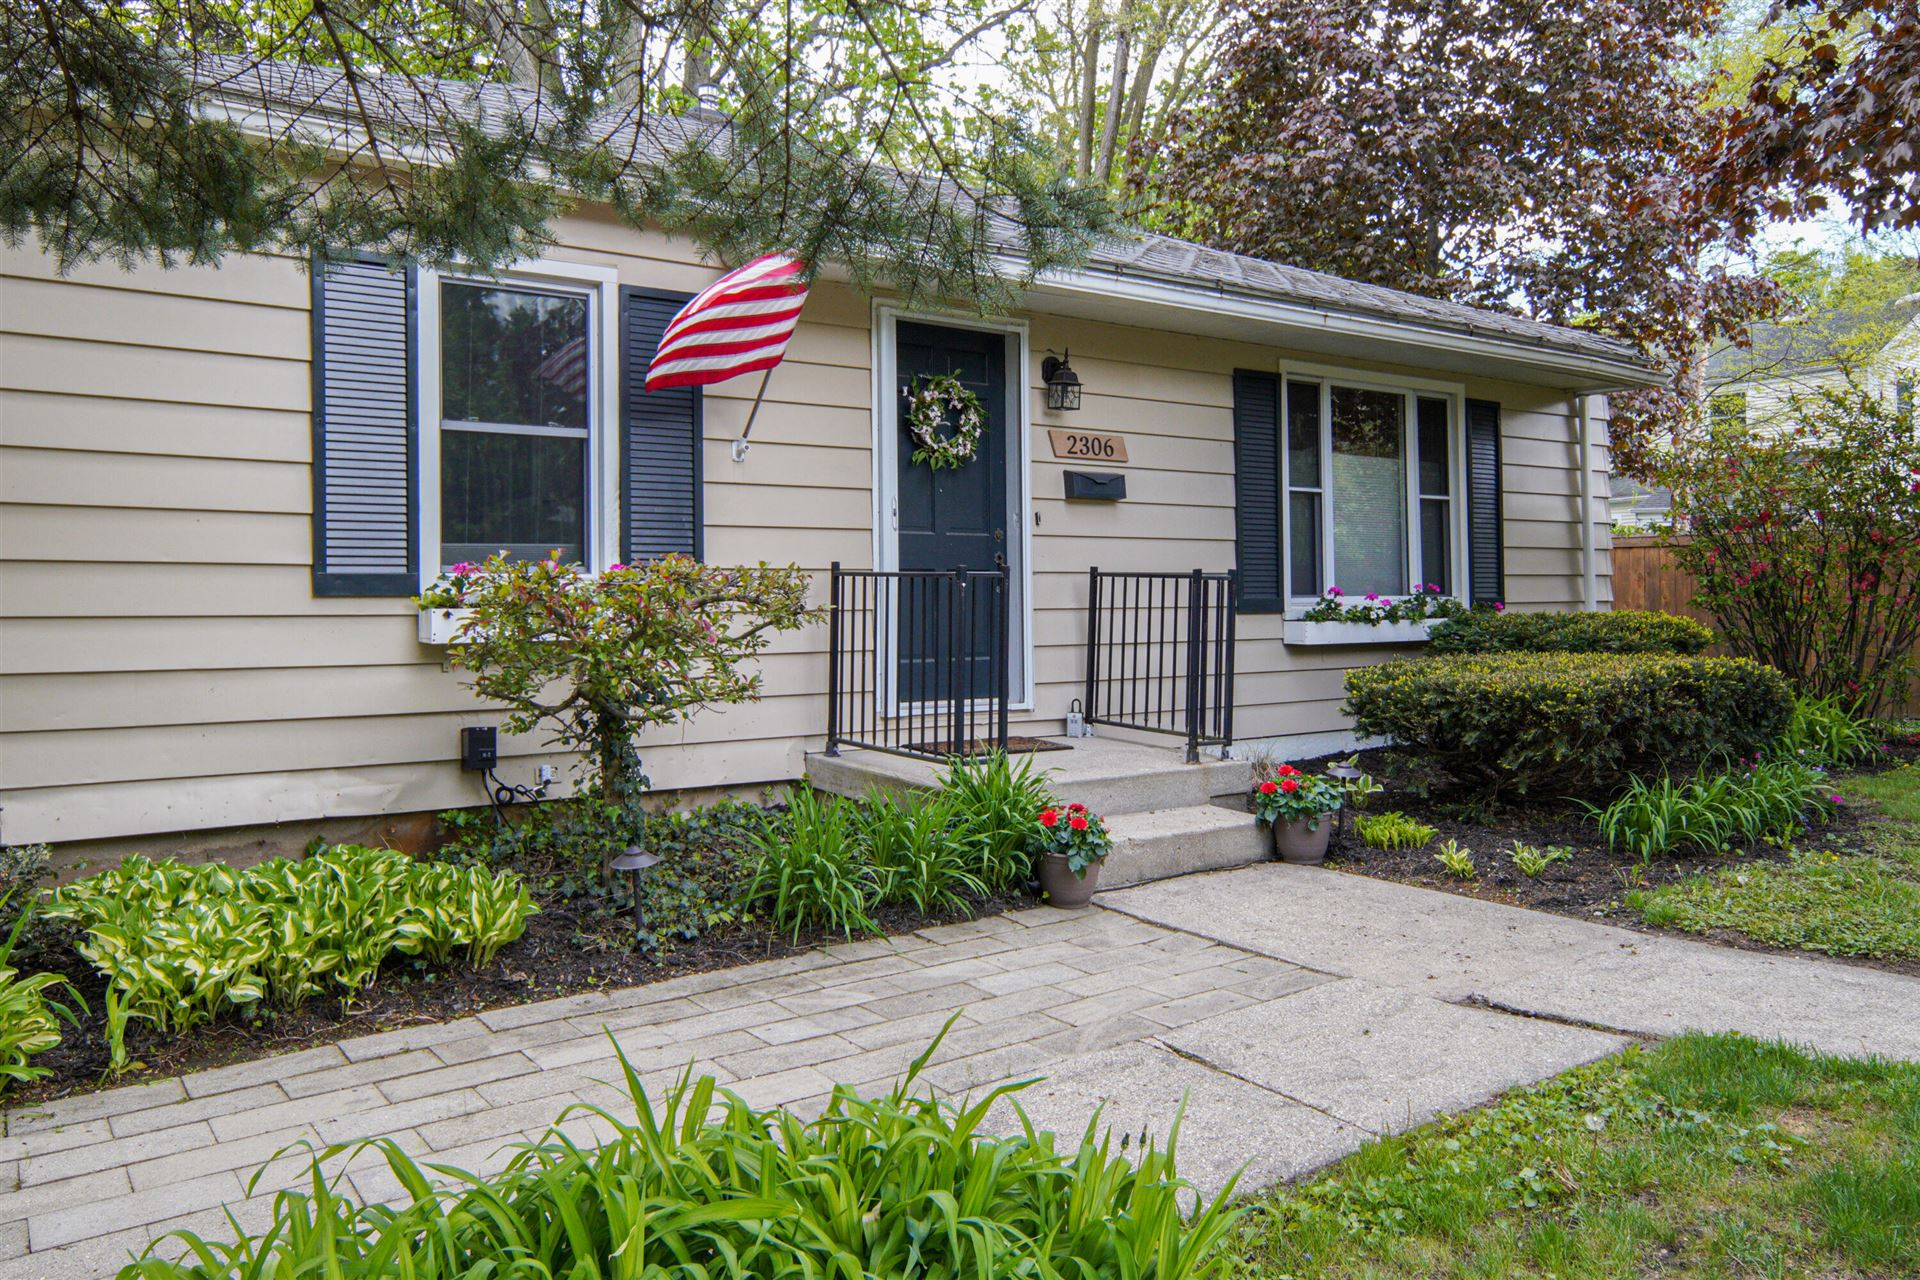 2306 Burchard Street SE, East Grand Rapids, MI 49506 - MLS#: 21016923